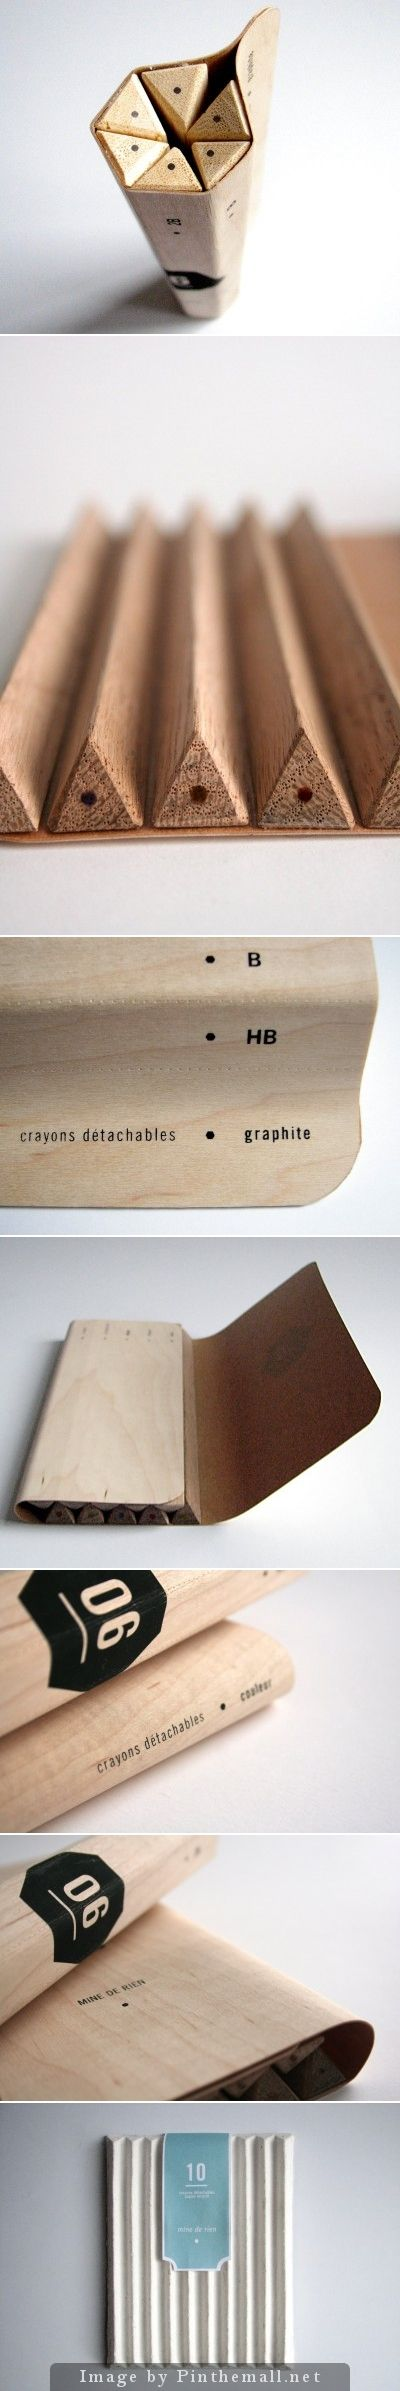 Maude Bussières | Nice concept of detachable pencils #packaging created from a single sheet of wood.